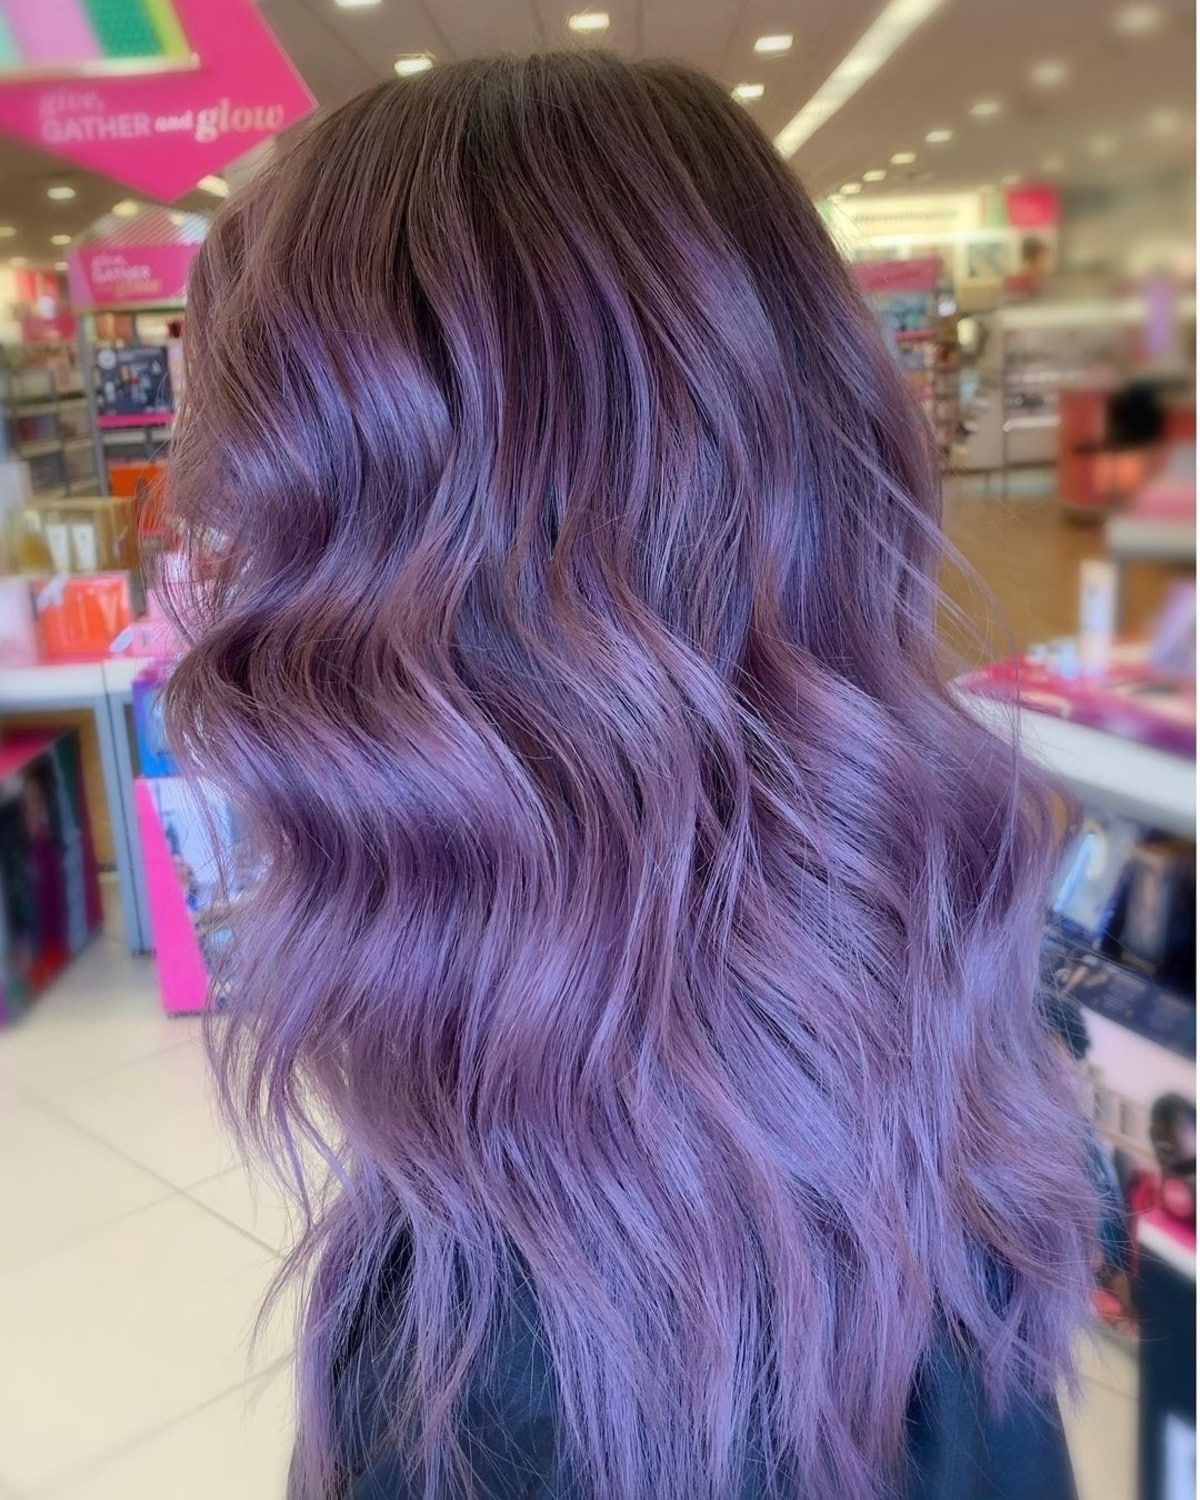 22 Perfect Examples of Lavender Hair Colors To Try Gallery